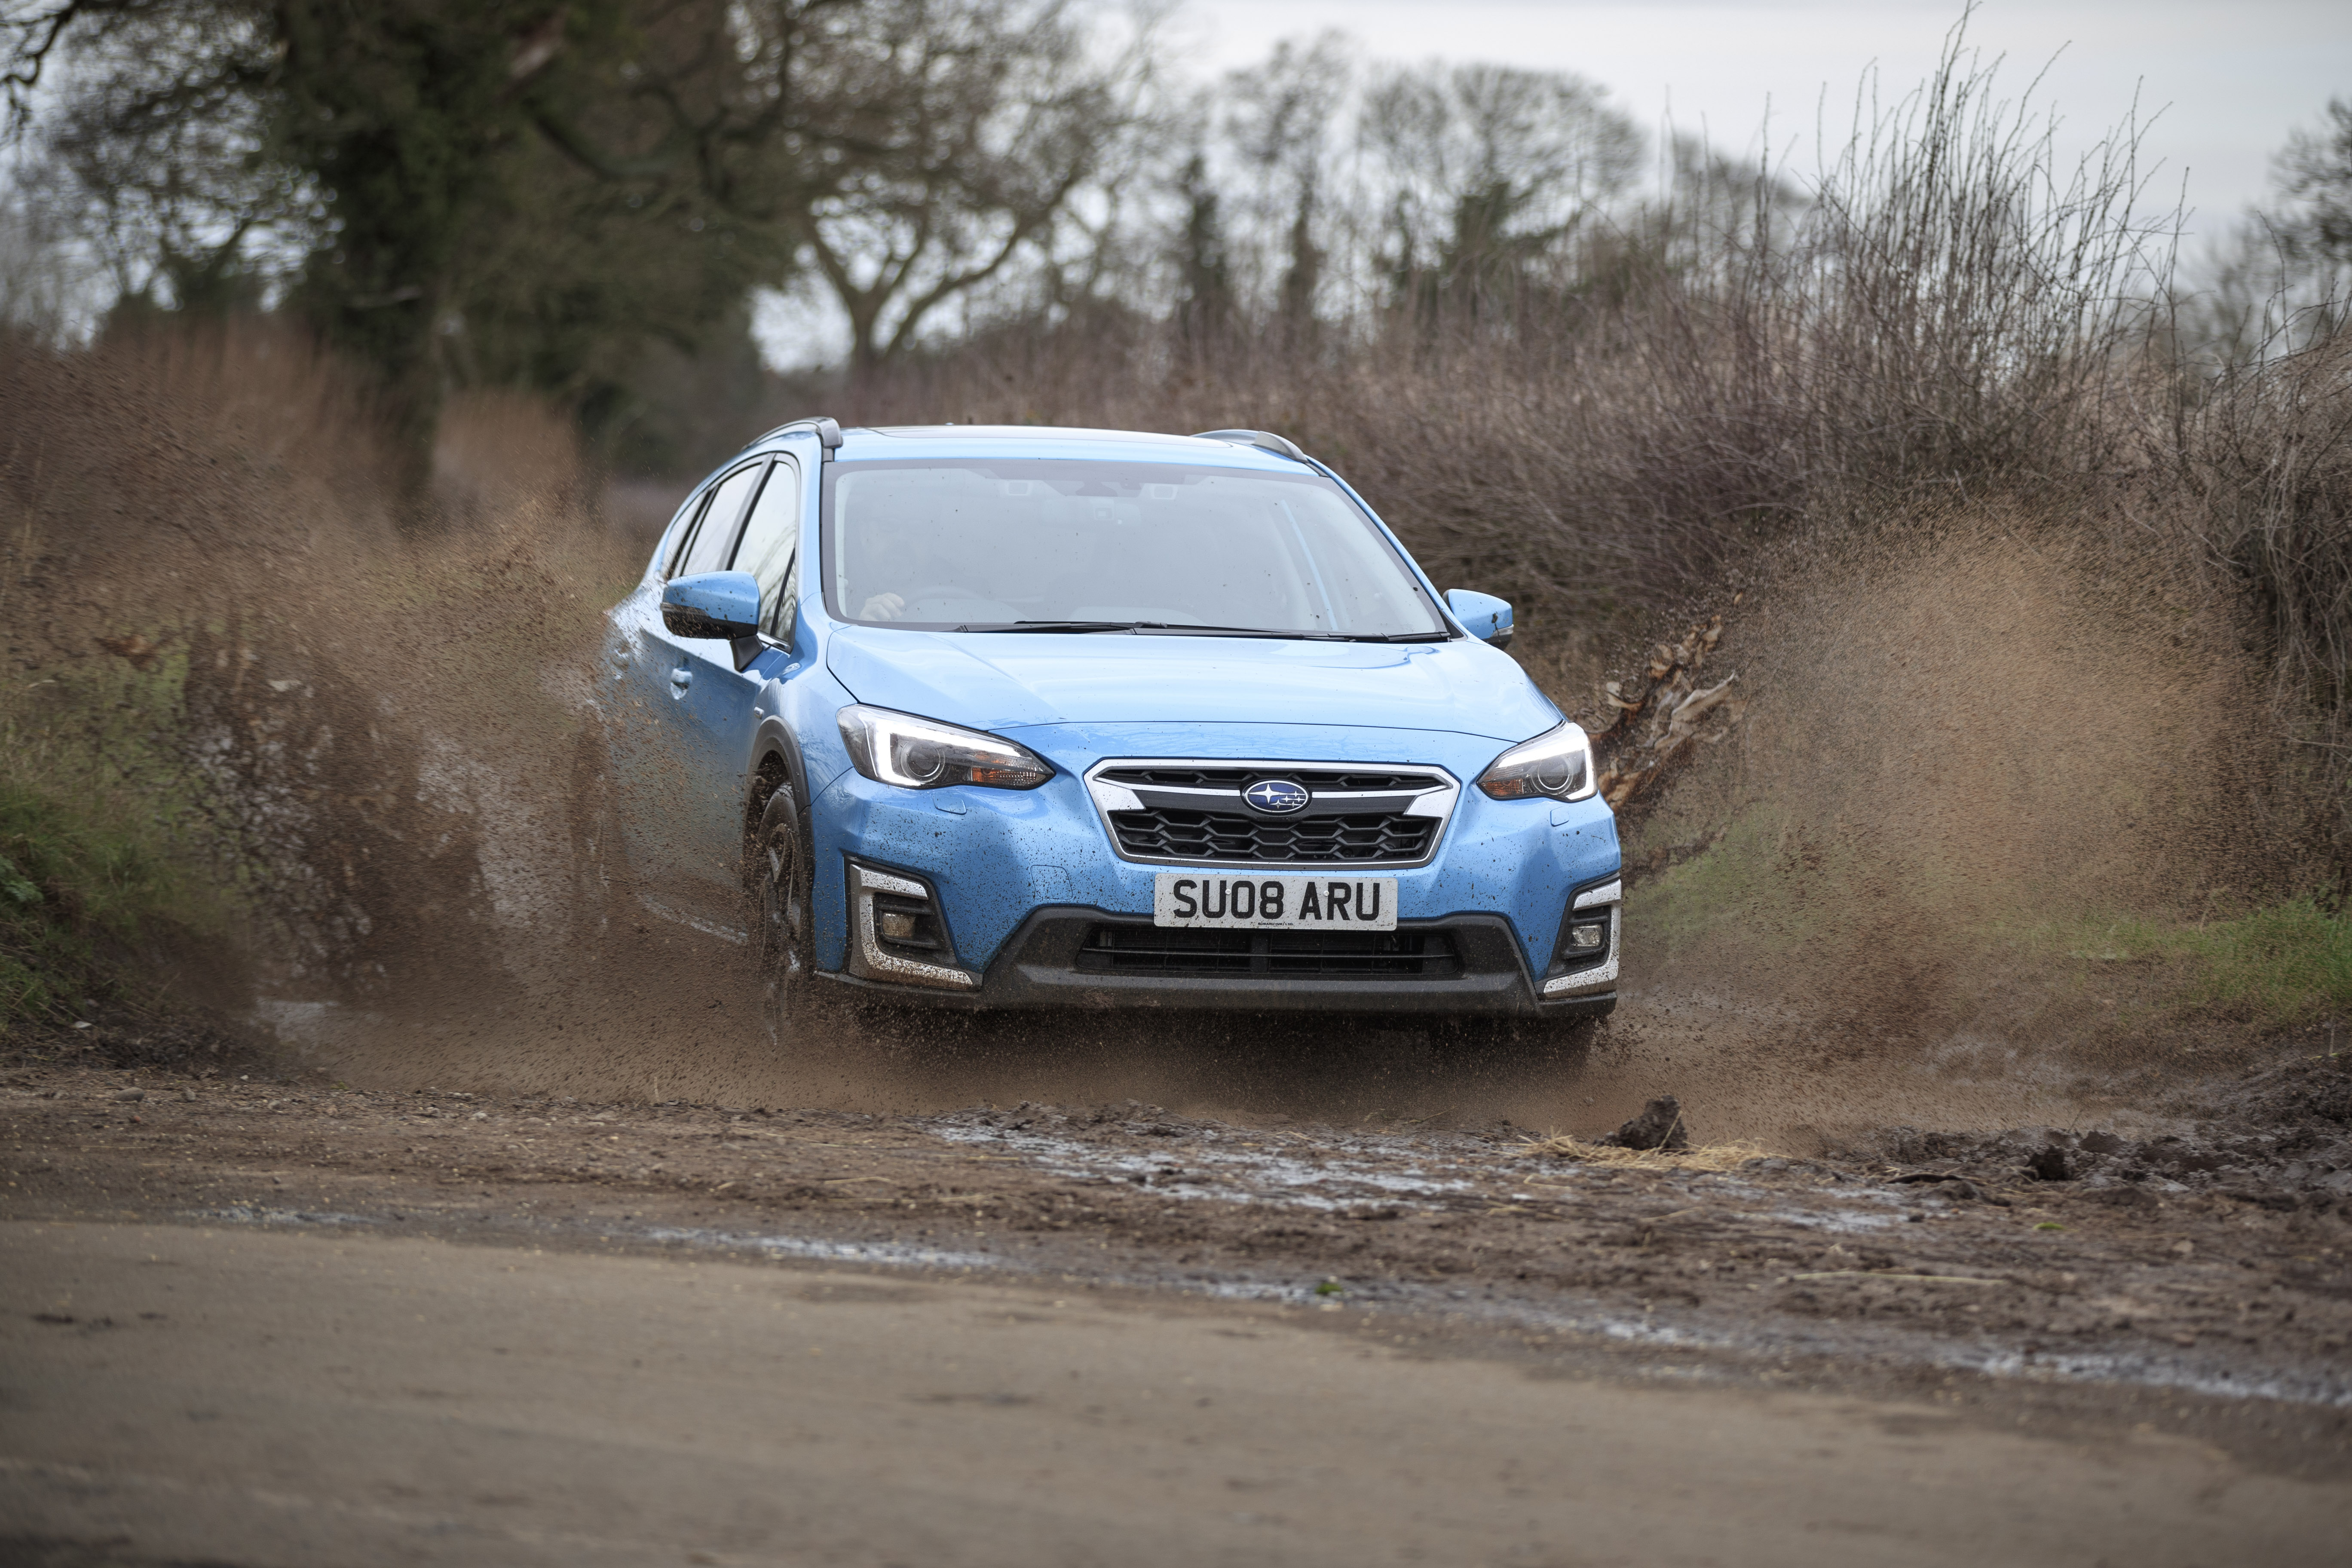 Subaru off-road dynamic